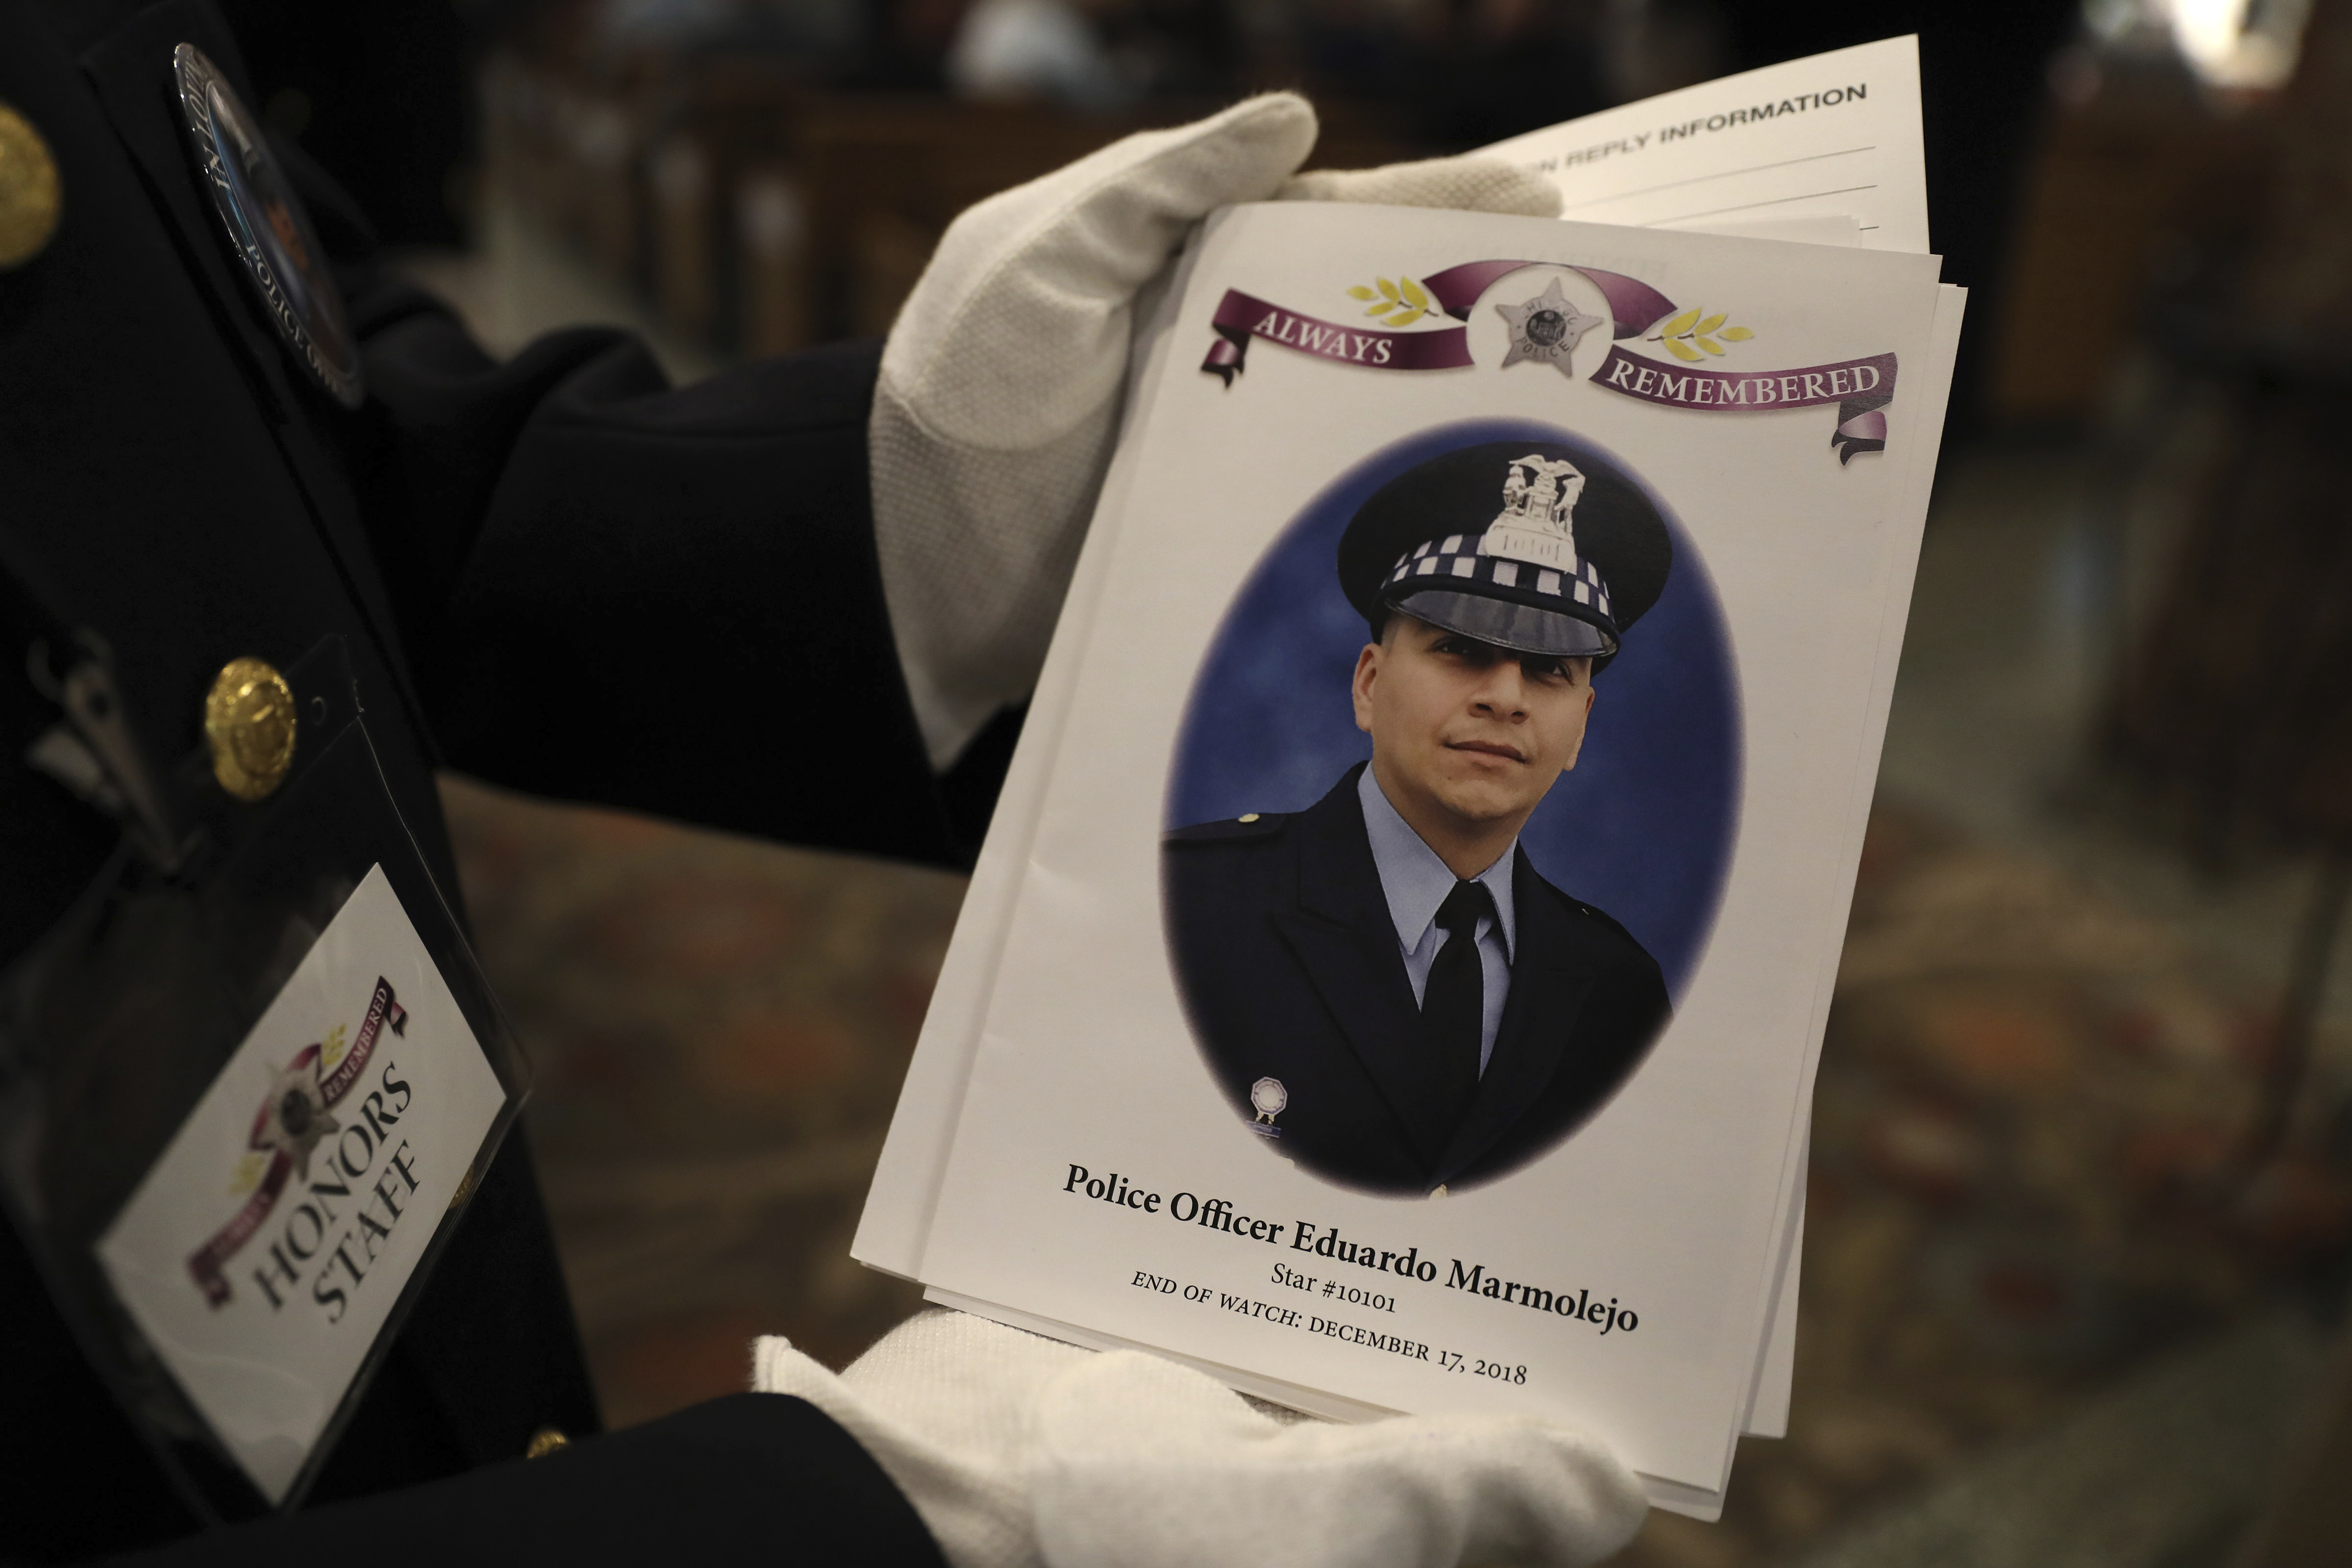 Officers prepare for the funeral for fallen Chicago police Officer Eduardo Marmolejo at St. Rita of Cascia Shrine Chapel in Chicago on Saturday, Dec. 22, 2018. (Abel Uribe/Chicago Tribune via AP, Pool)